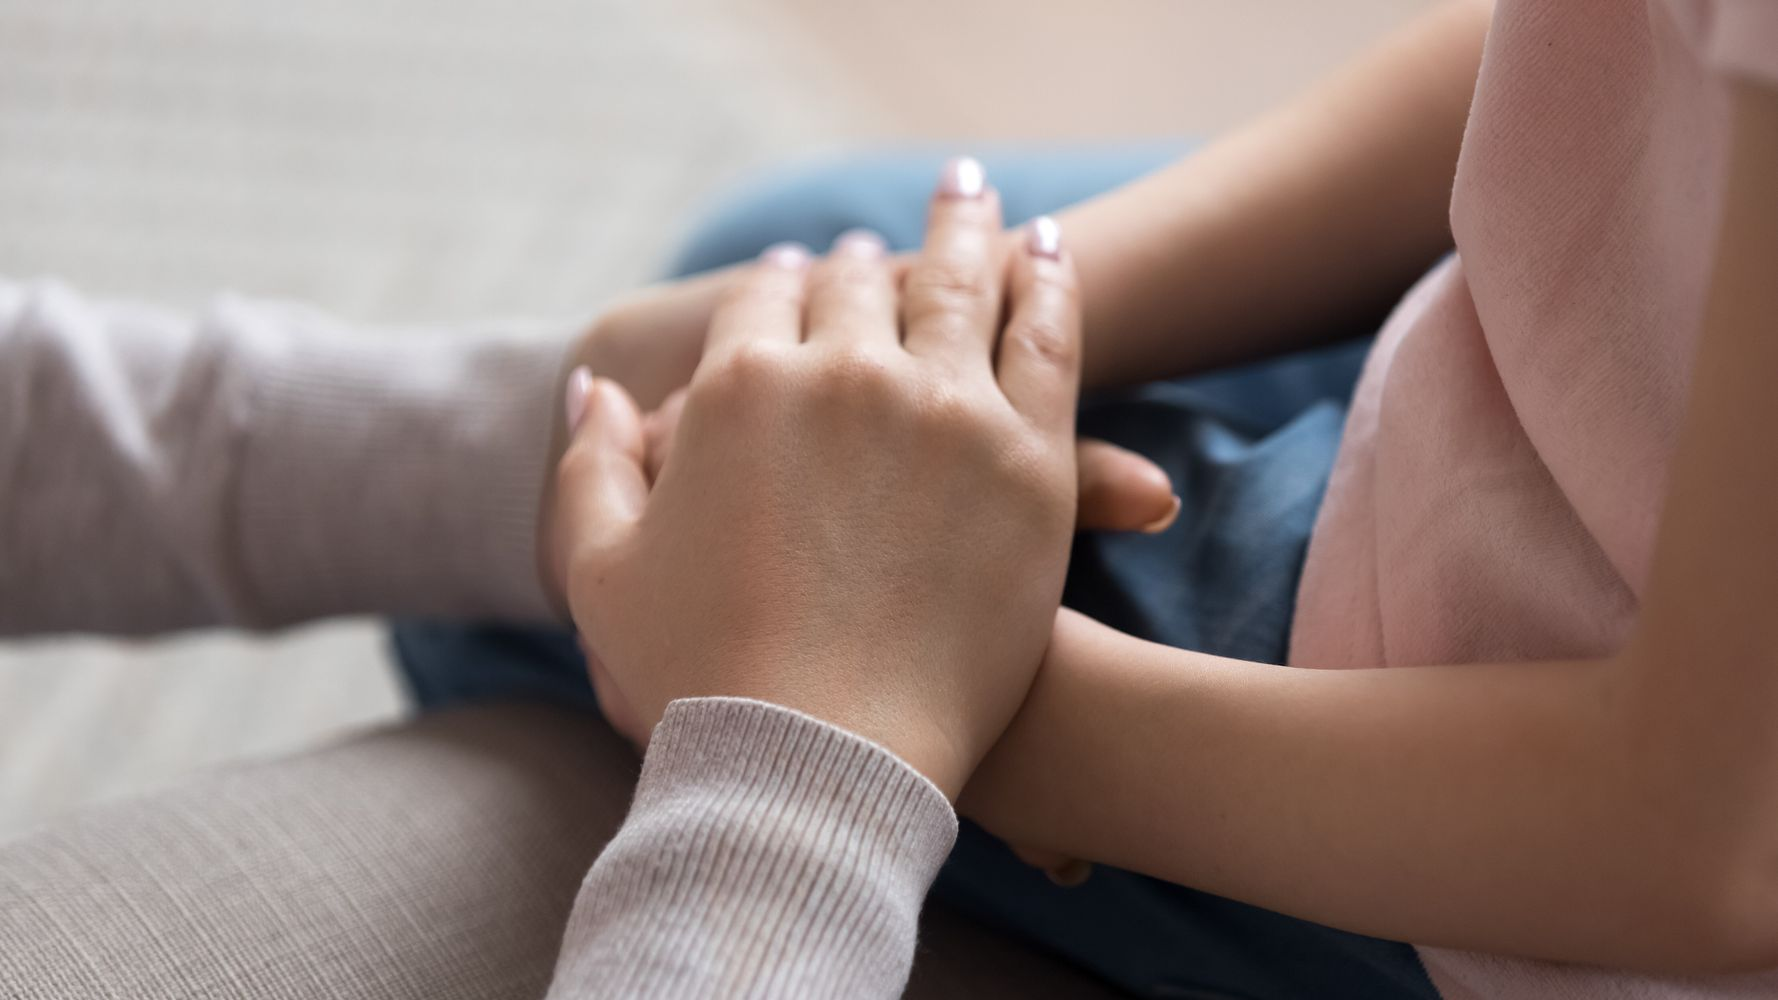 Here's Why We Became Foster Parents, Even Though We Aren't Looking To Adopt